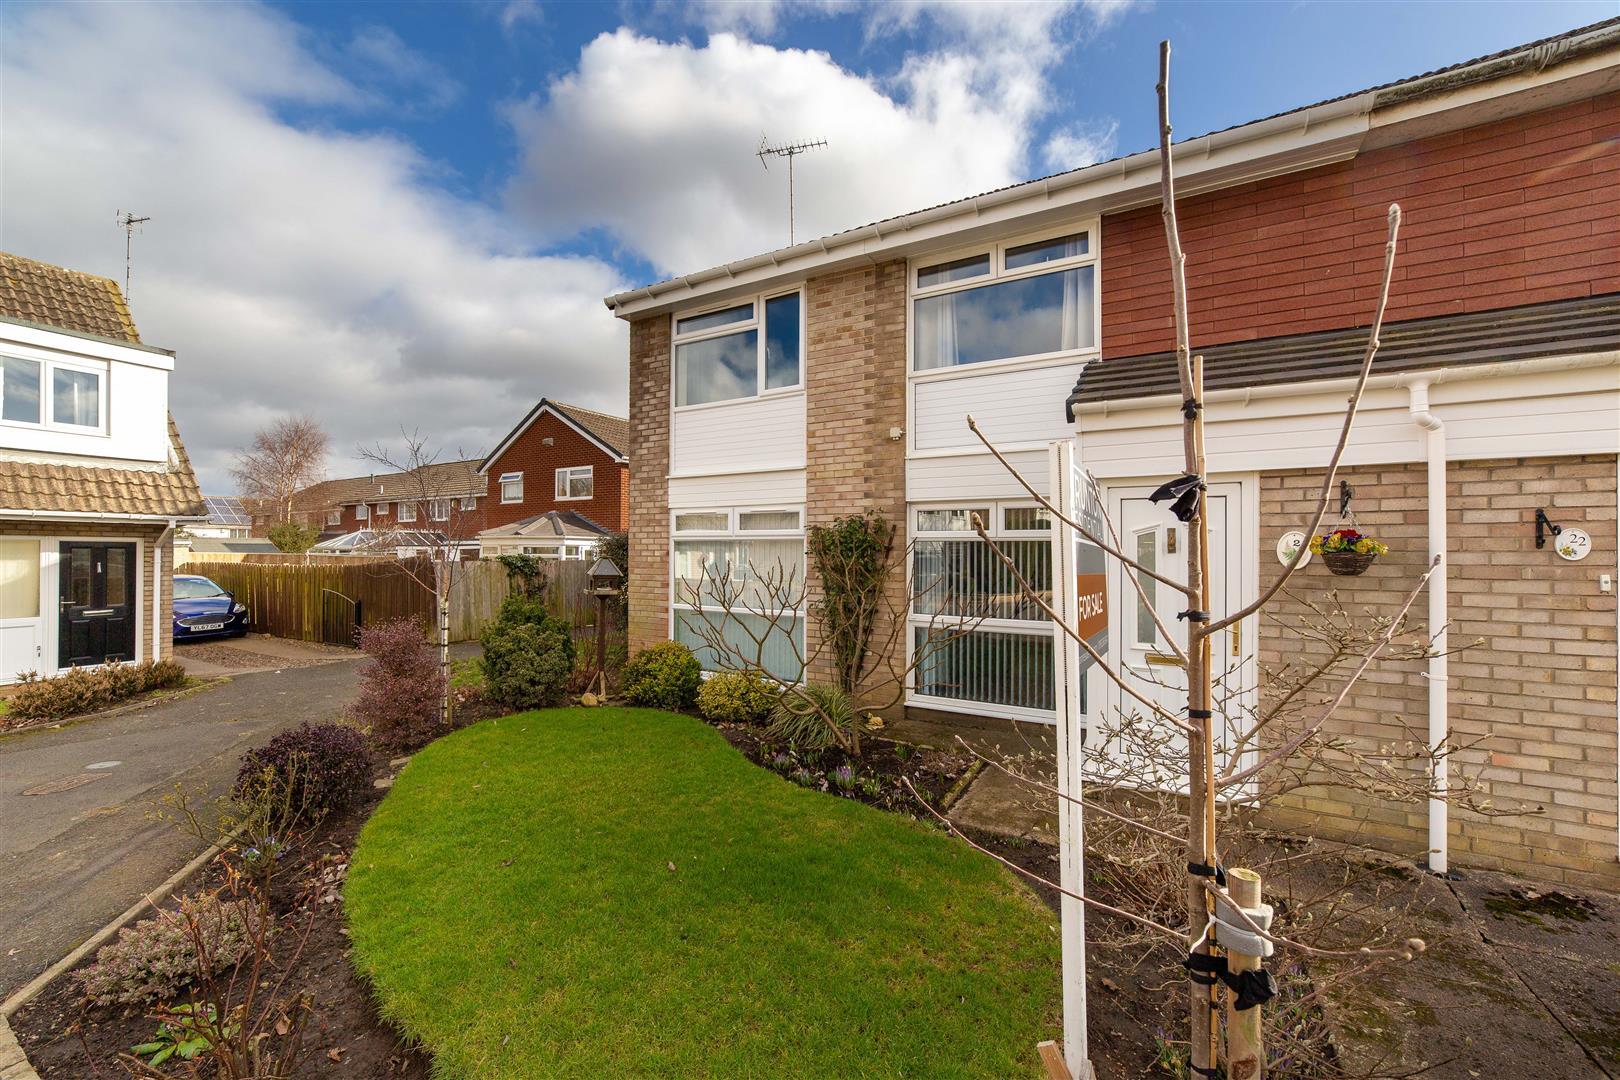 3 bed semi-detached house for sale in Kent Court, Kingston Park - Property Image 1